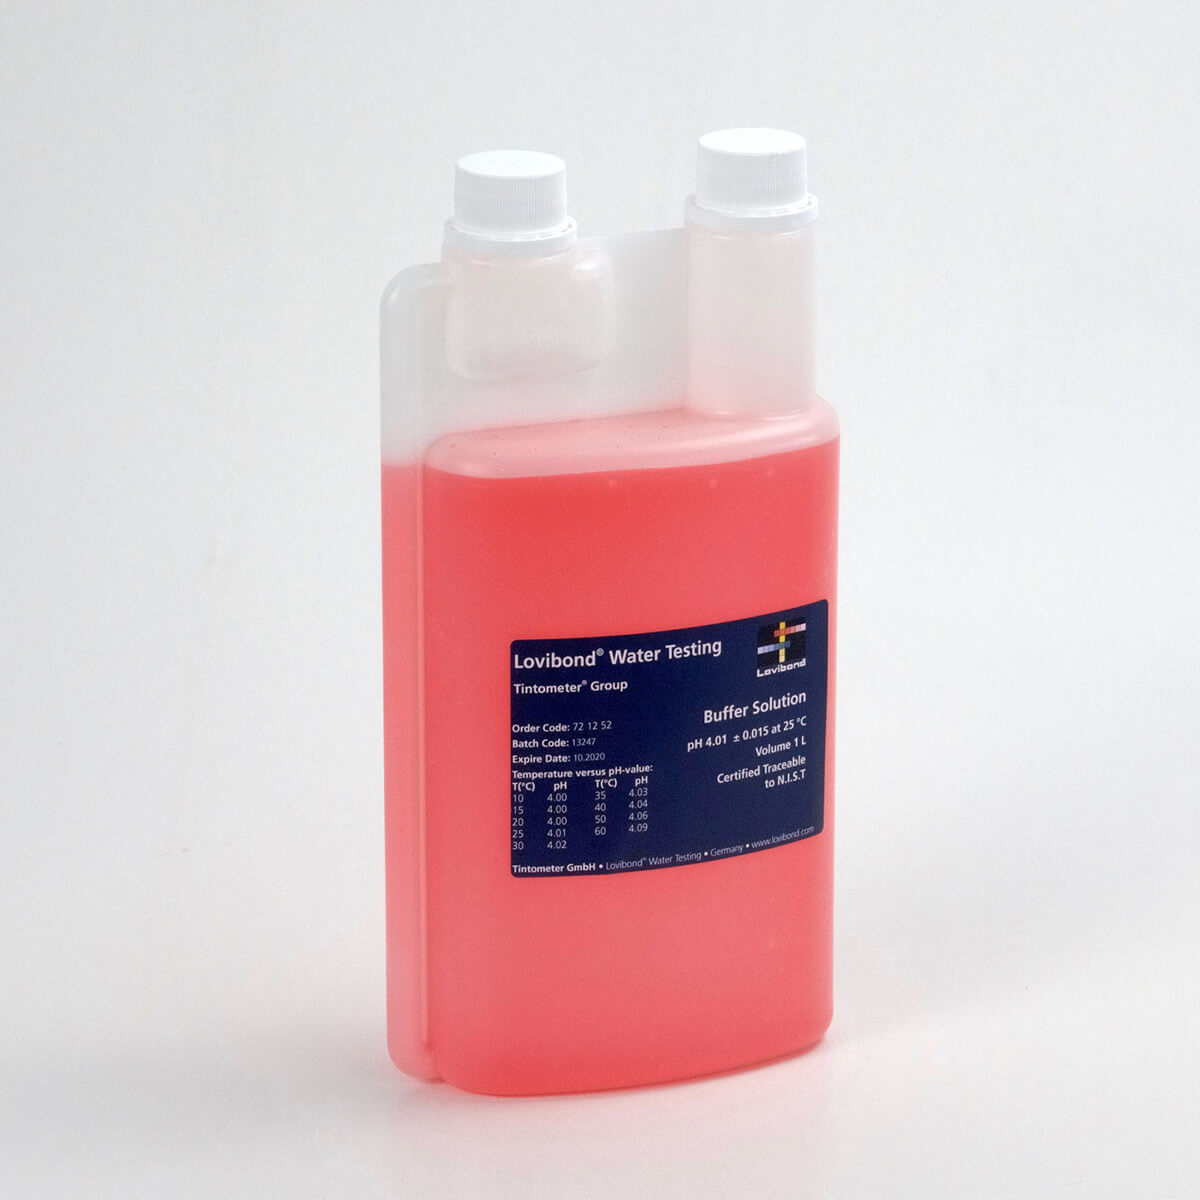 Lovibond pH 4.01 Buffer Solution  | Red | 1 Liter Standard Solutions and Buffers - Cleanflow